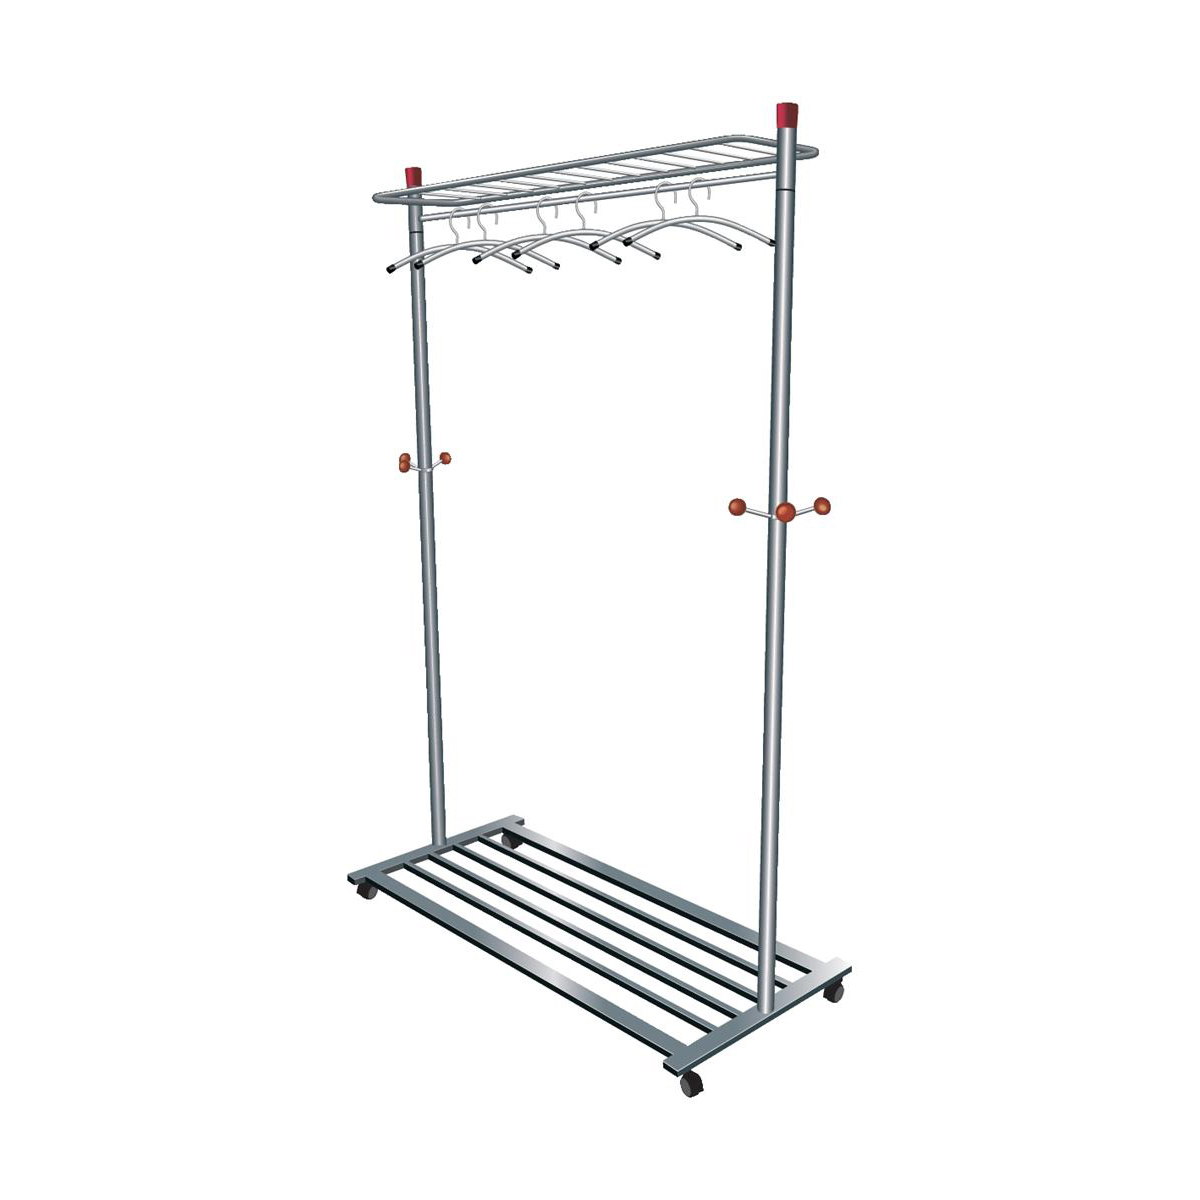 5 Star Facilities Coat Rack Mobile 4 Wheels 3 Pegs Capacity 40-50 Hangers 1270x555x1790mm Silver